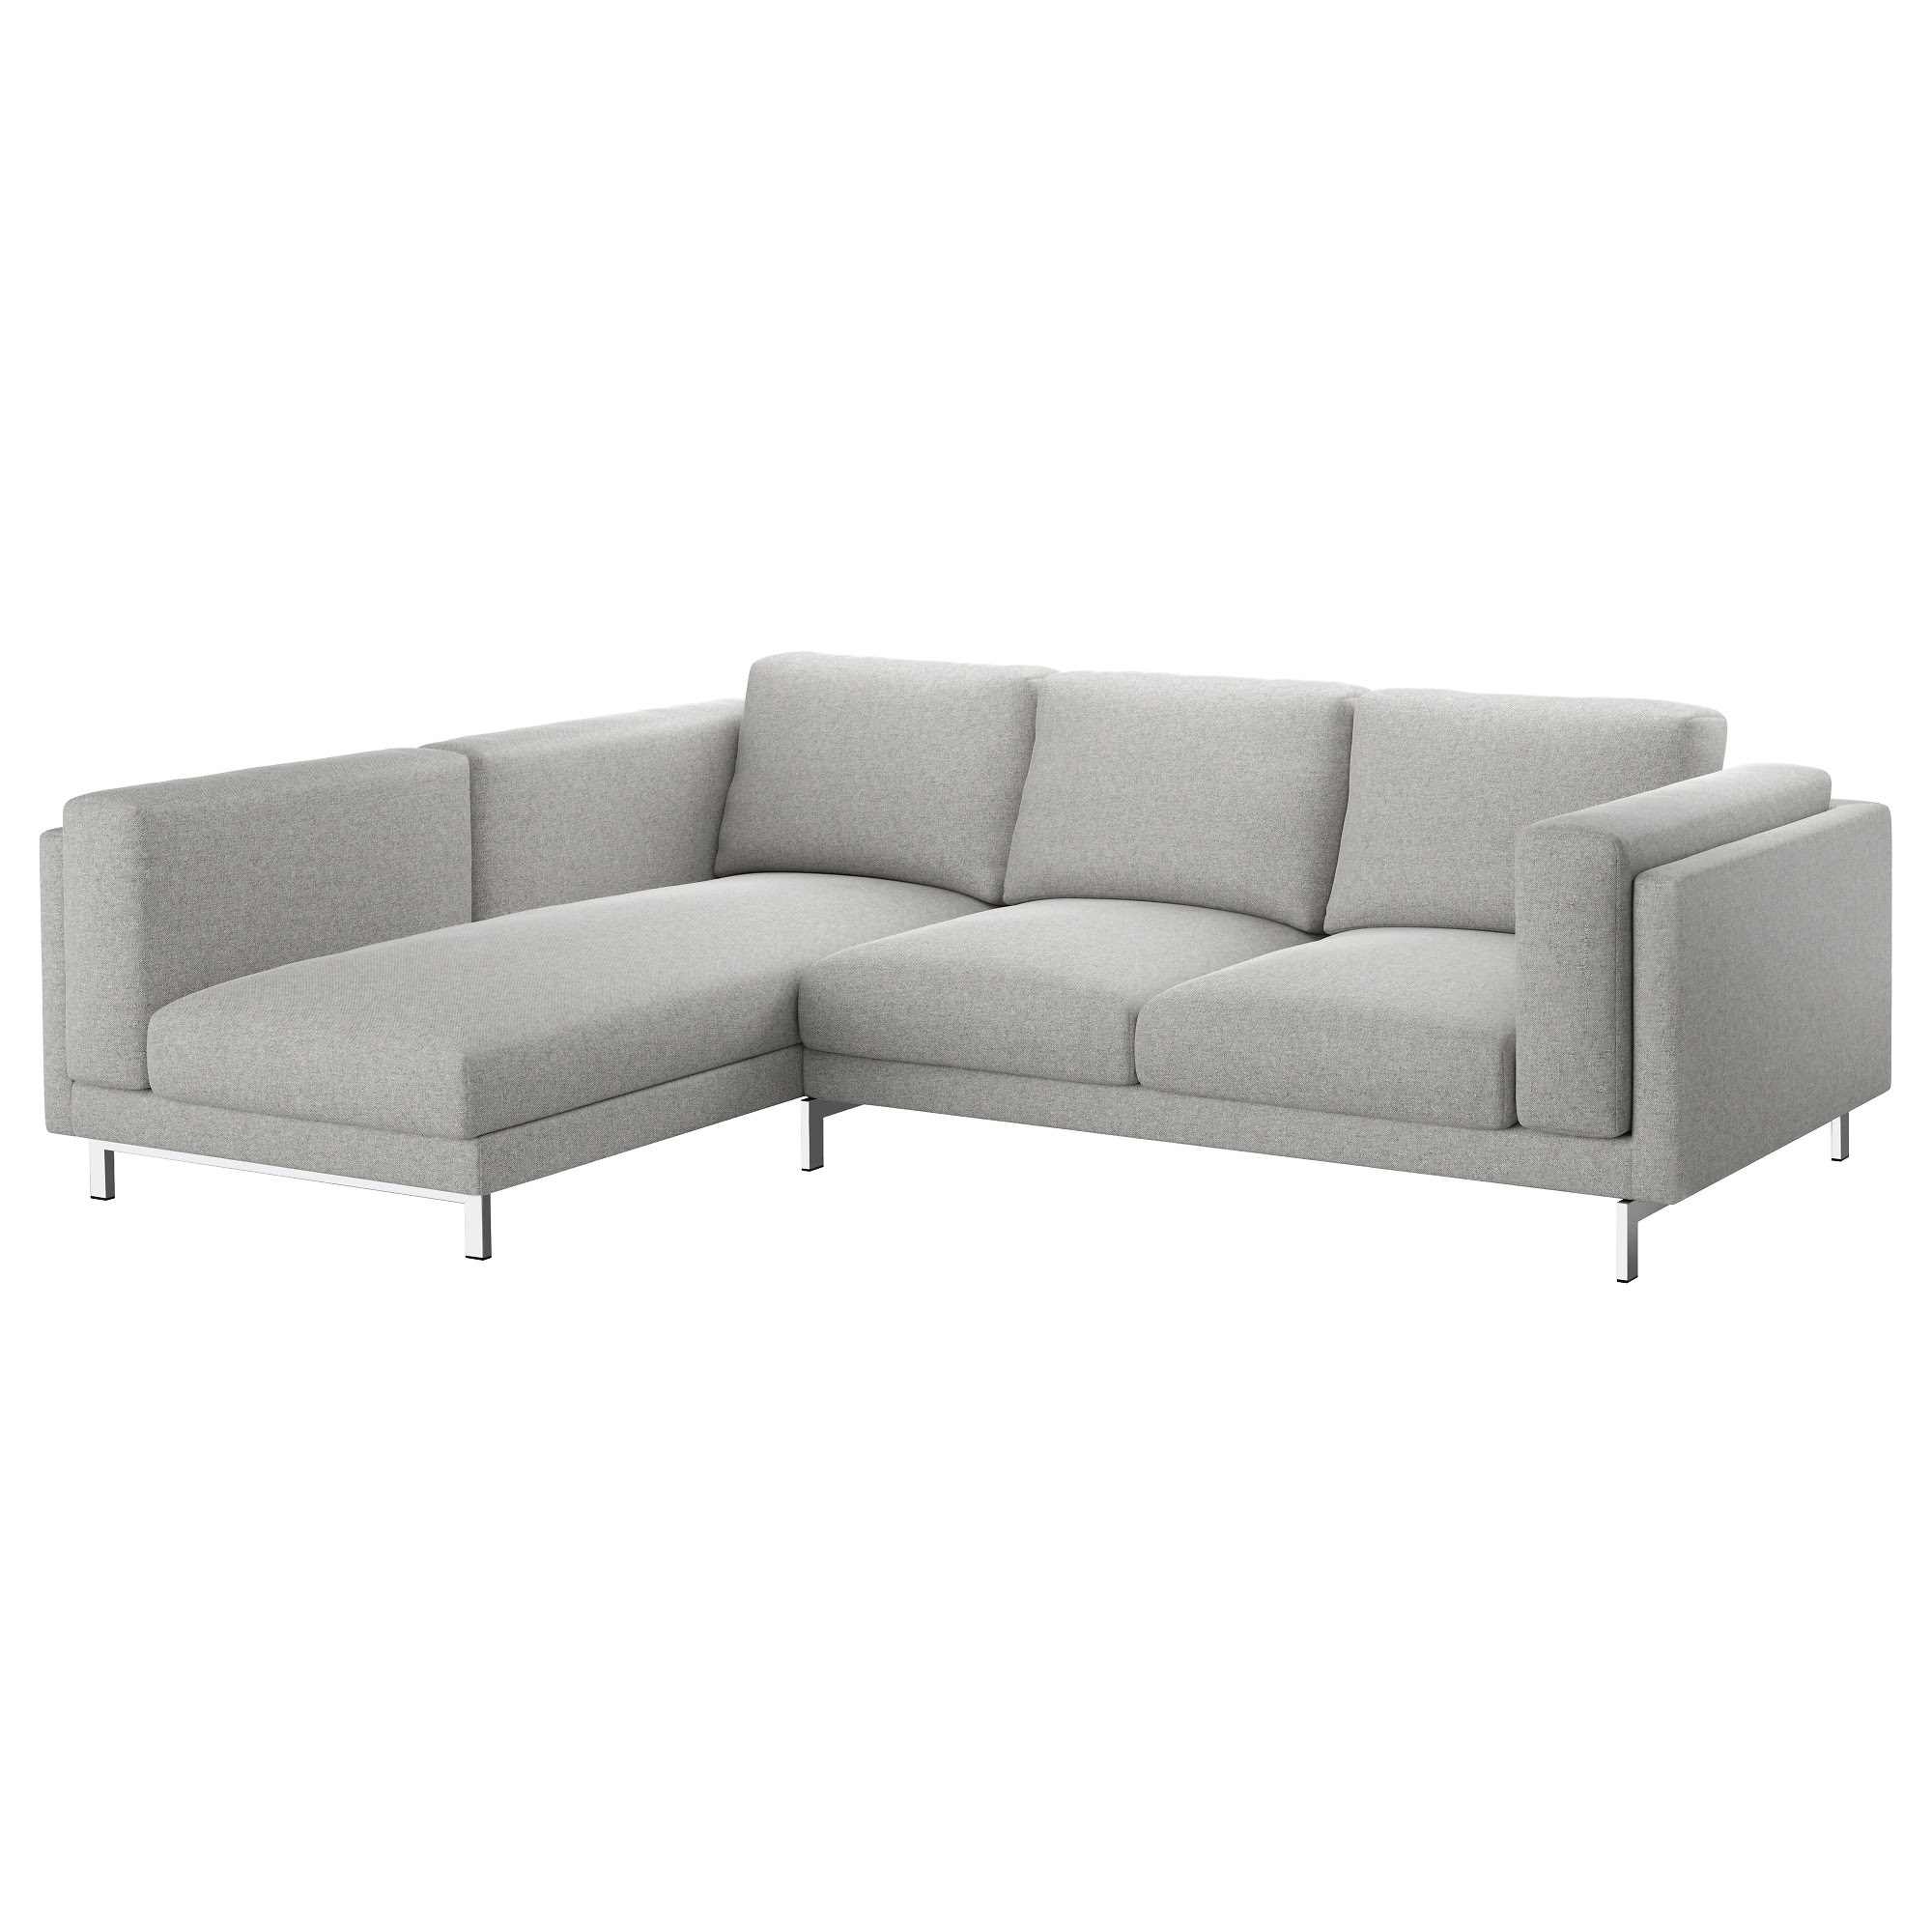 Ikea White Sectional Sofa King Sofa